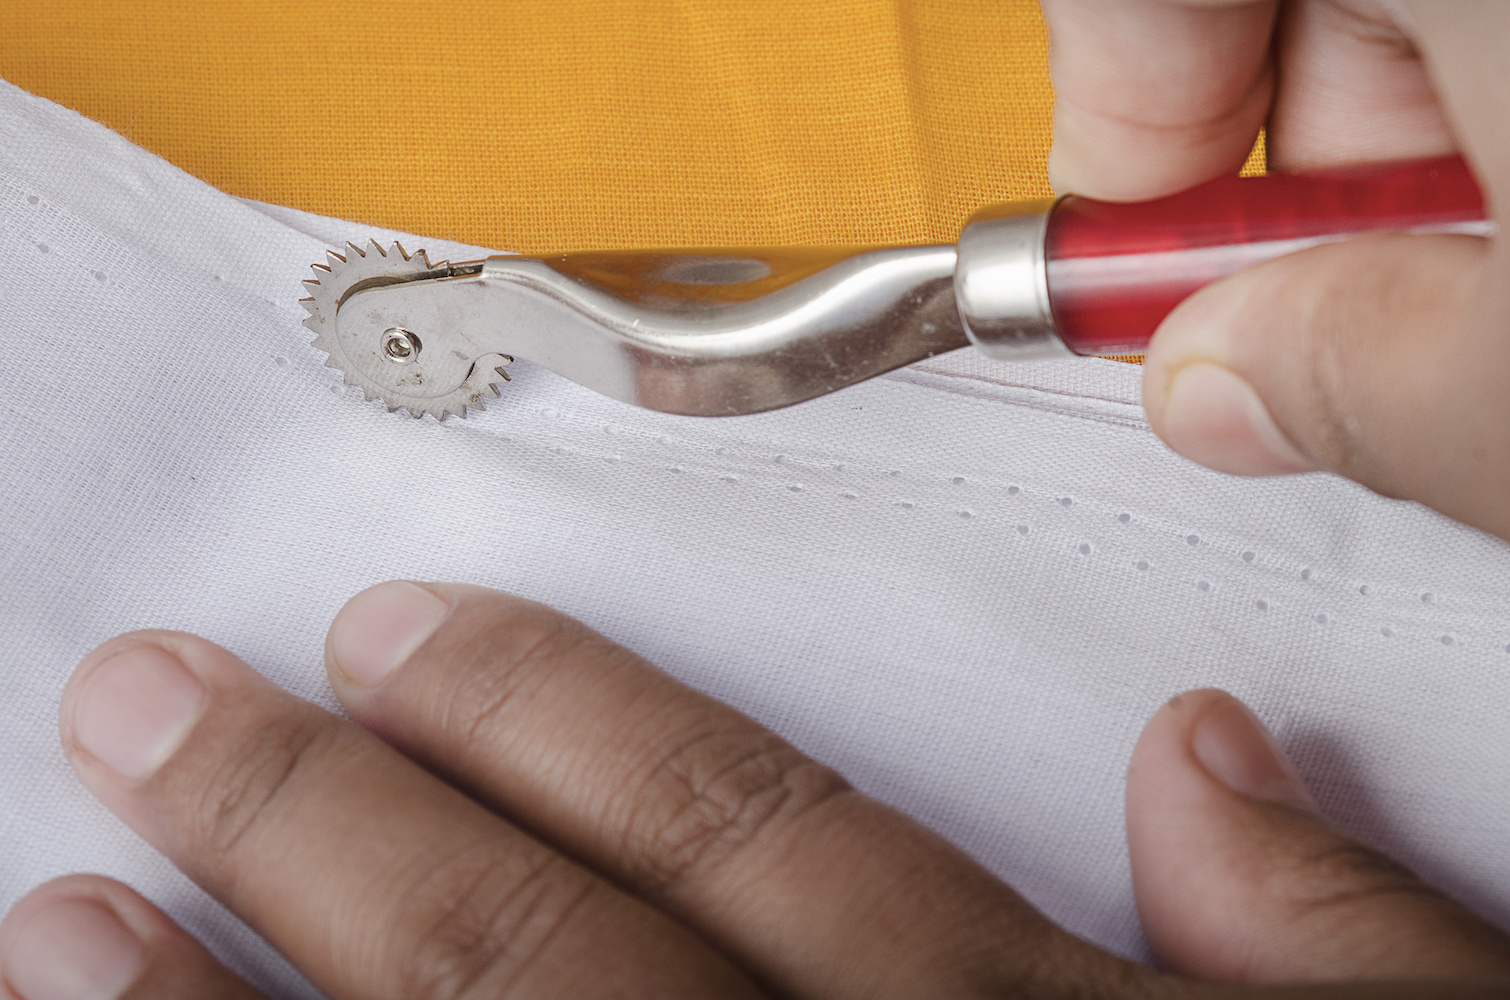 Clover Tracing Wheel-Serrated Edge for marking directly on fabric